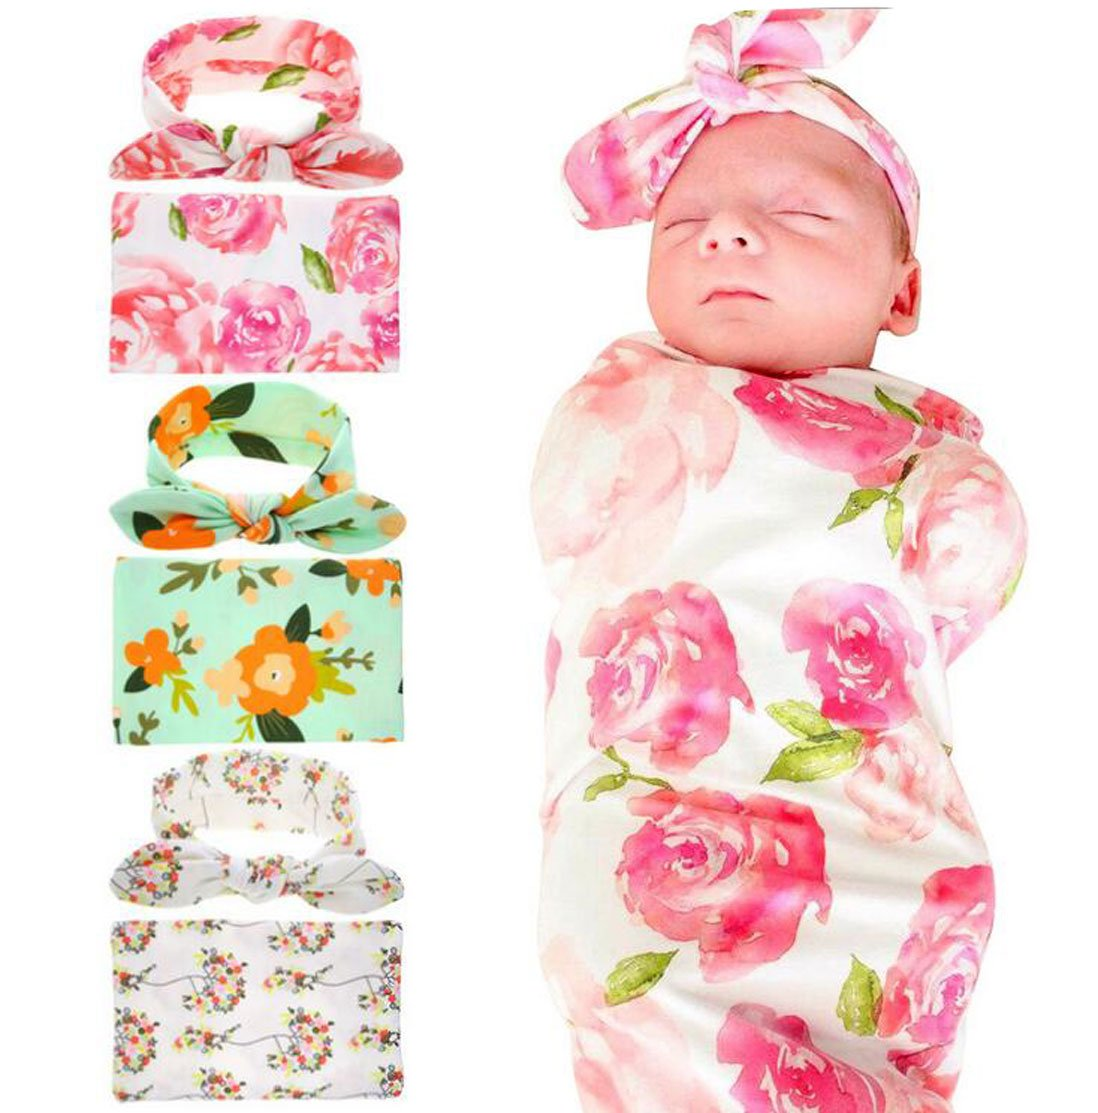 Lucky Staryuan 3 Set New Baby Girl Flower Printing Headband Wrapped Towel Set (Baby Gifts) by Luckystaryuan